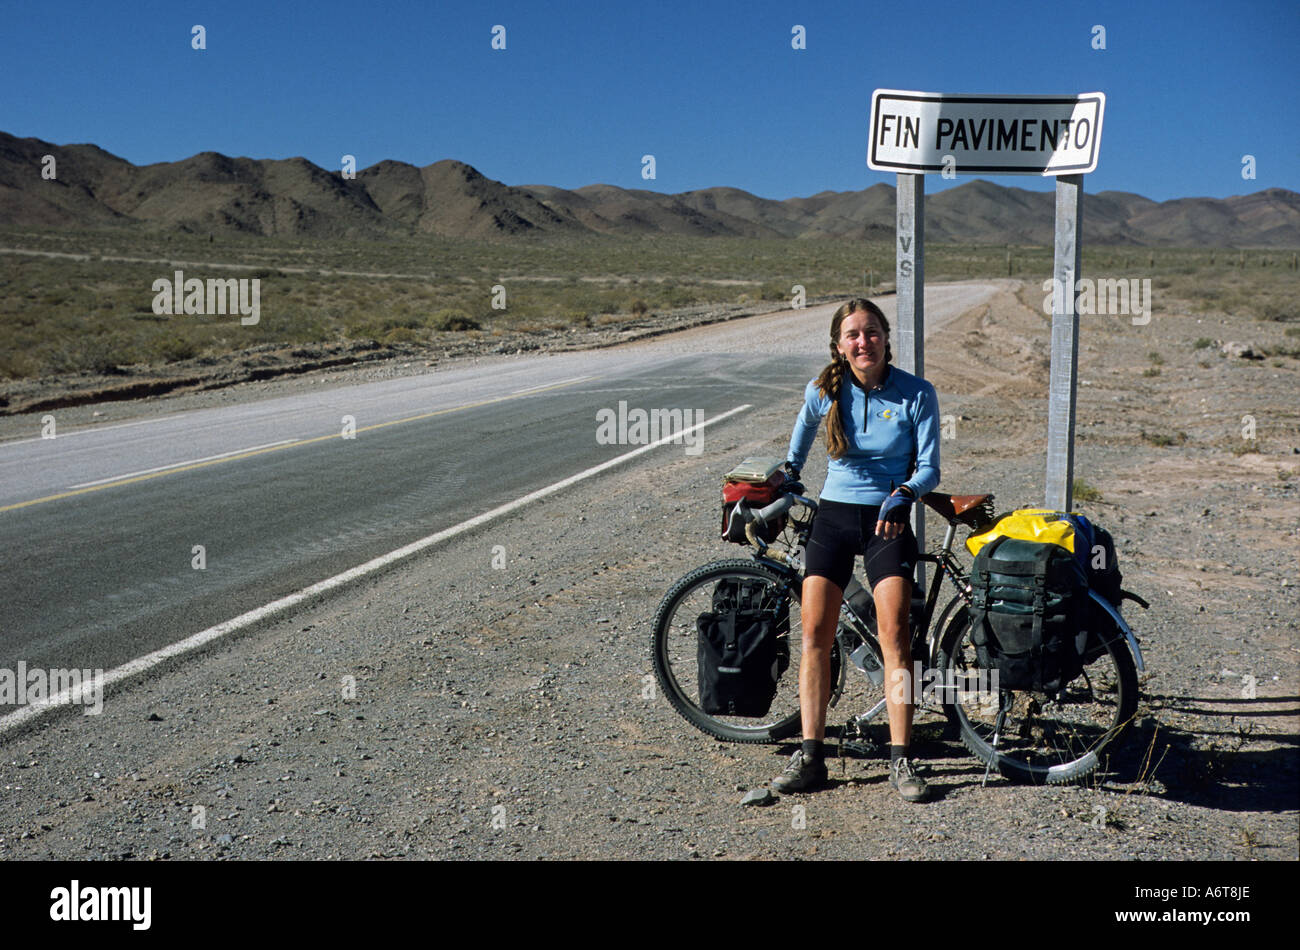 female cyclist staring with bicycle next to Fin Pavimento sign end of road in remote Northern Argentina Stock Photo